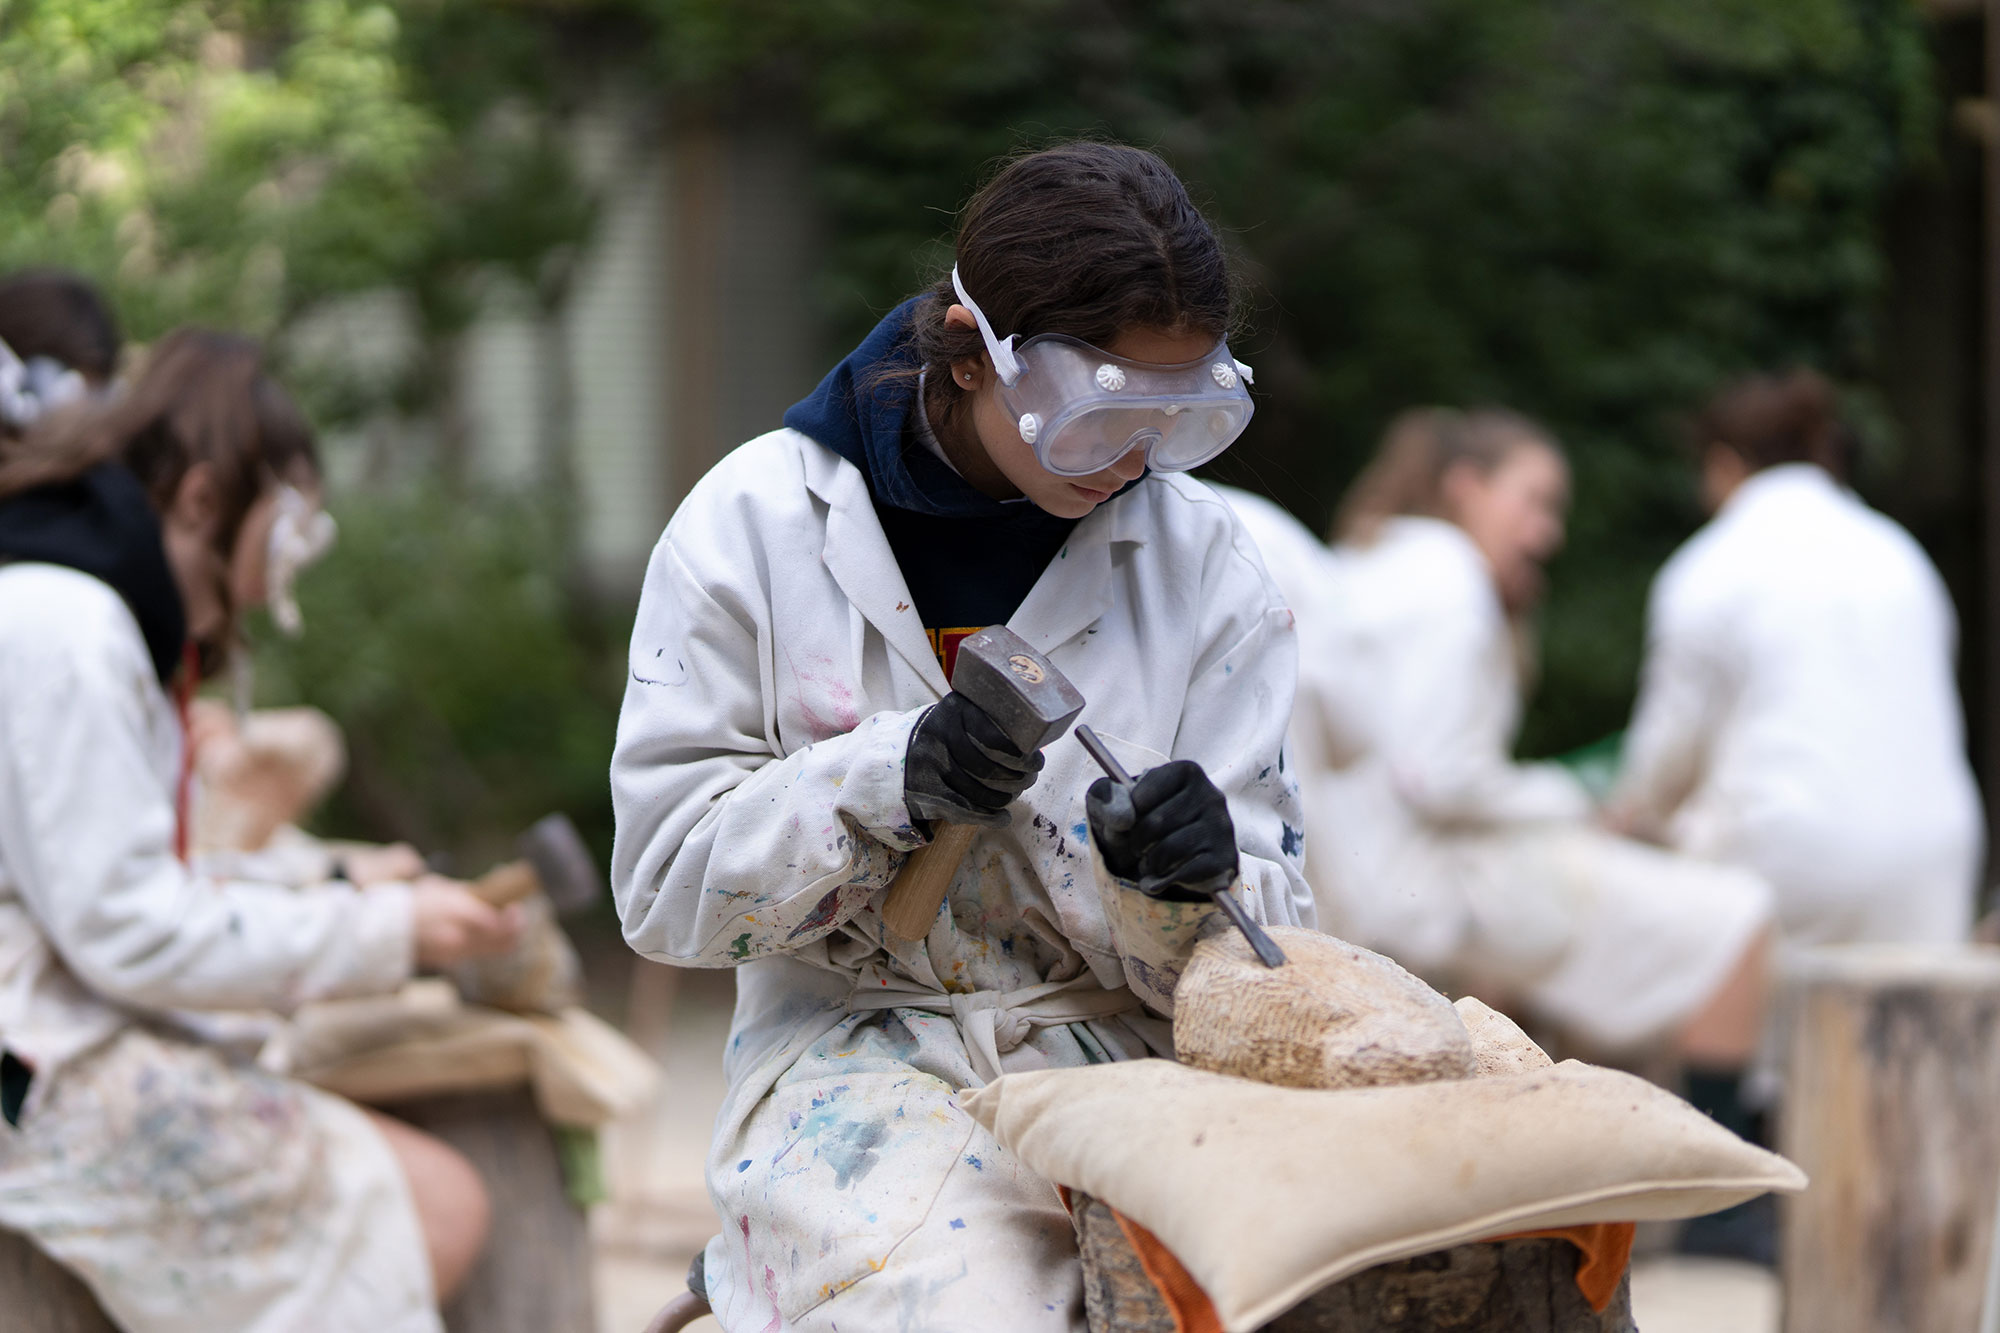 A student engaged in stone carving, wearing a white coat and safety glasses.